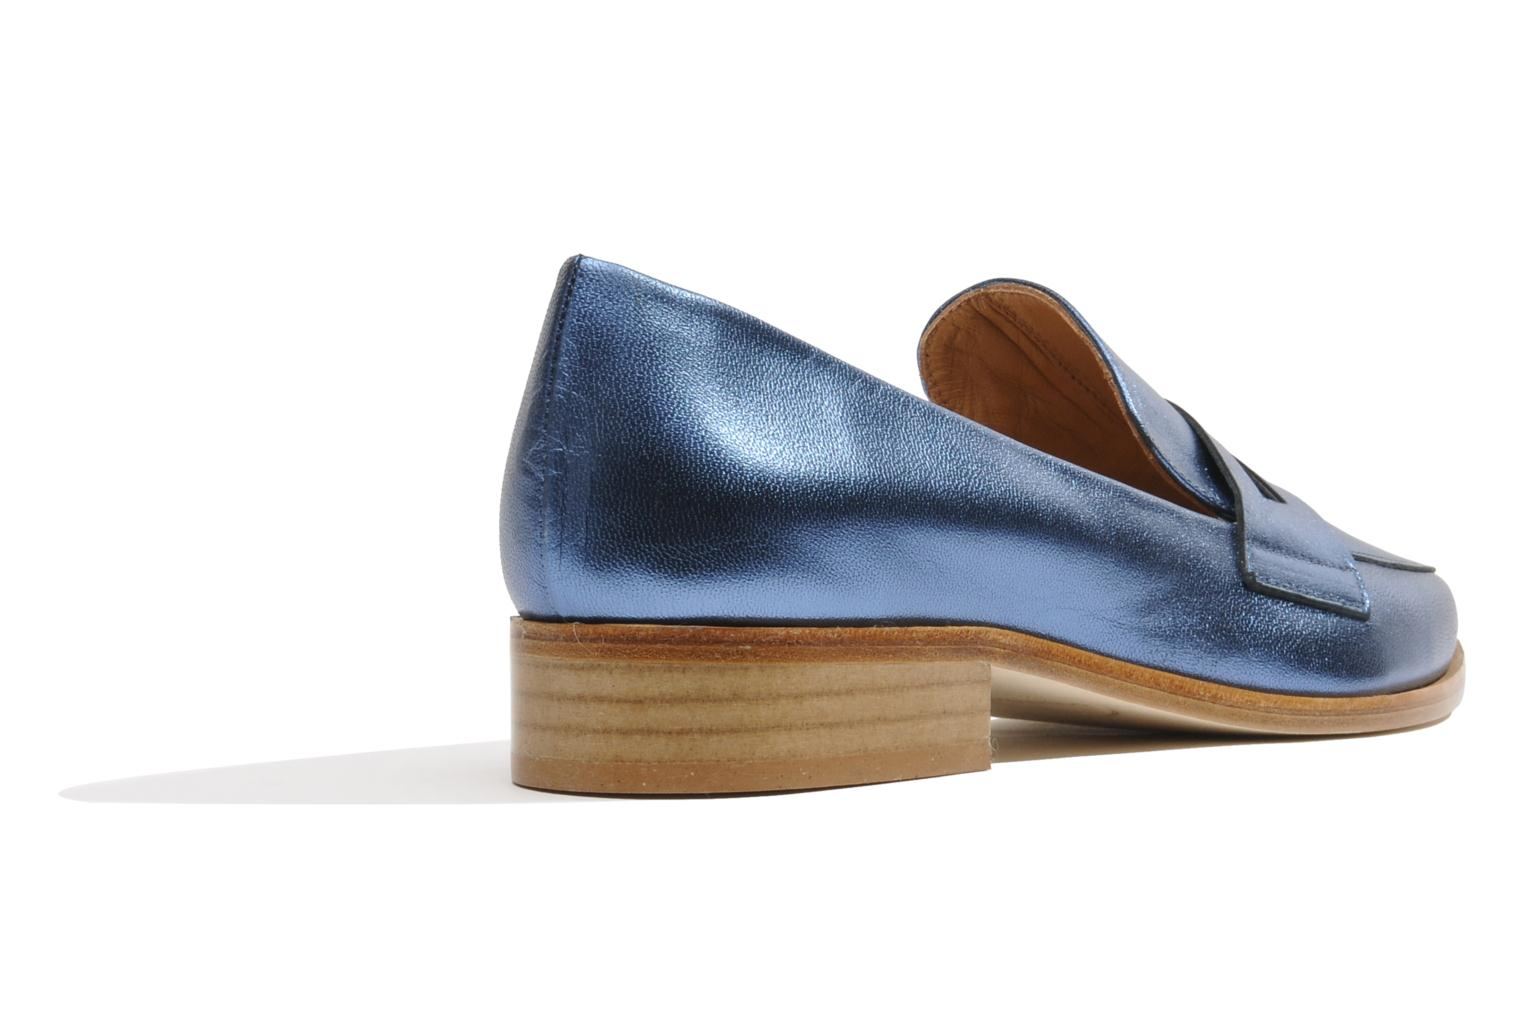 90's Girls Gang Mocassins #3 Blue jean laminado